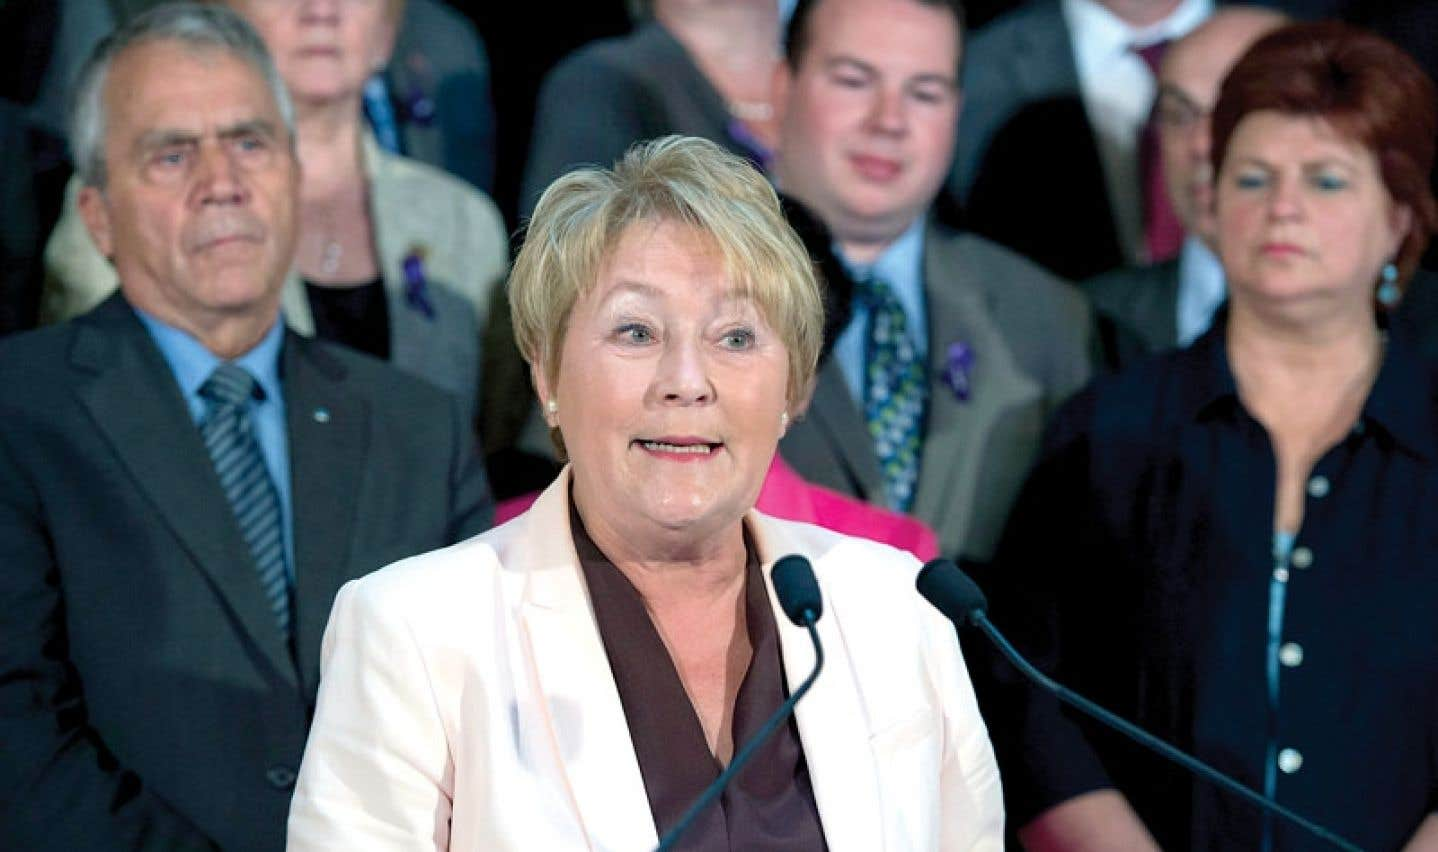 Bilan de session parlementaire - Marois s'avoue coupable de précipitation